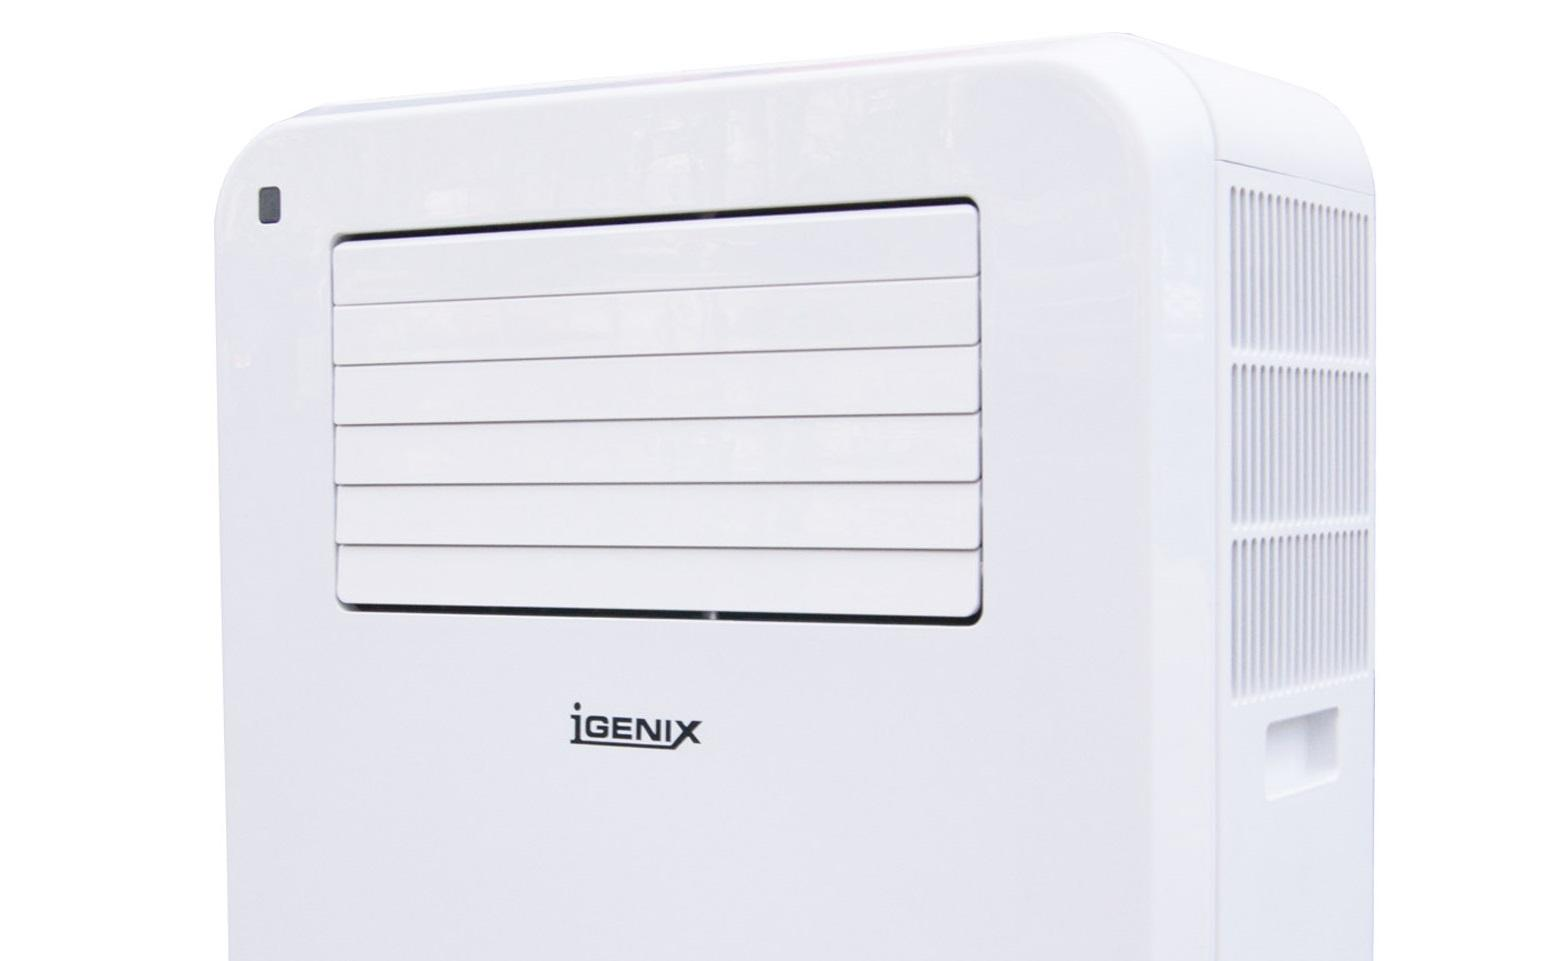 Igenix IG9903 11500 BTU 4 in 1 Portable Air Conditioner 1270 W White  #51517A